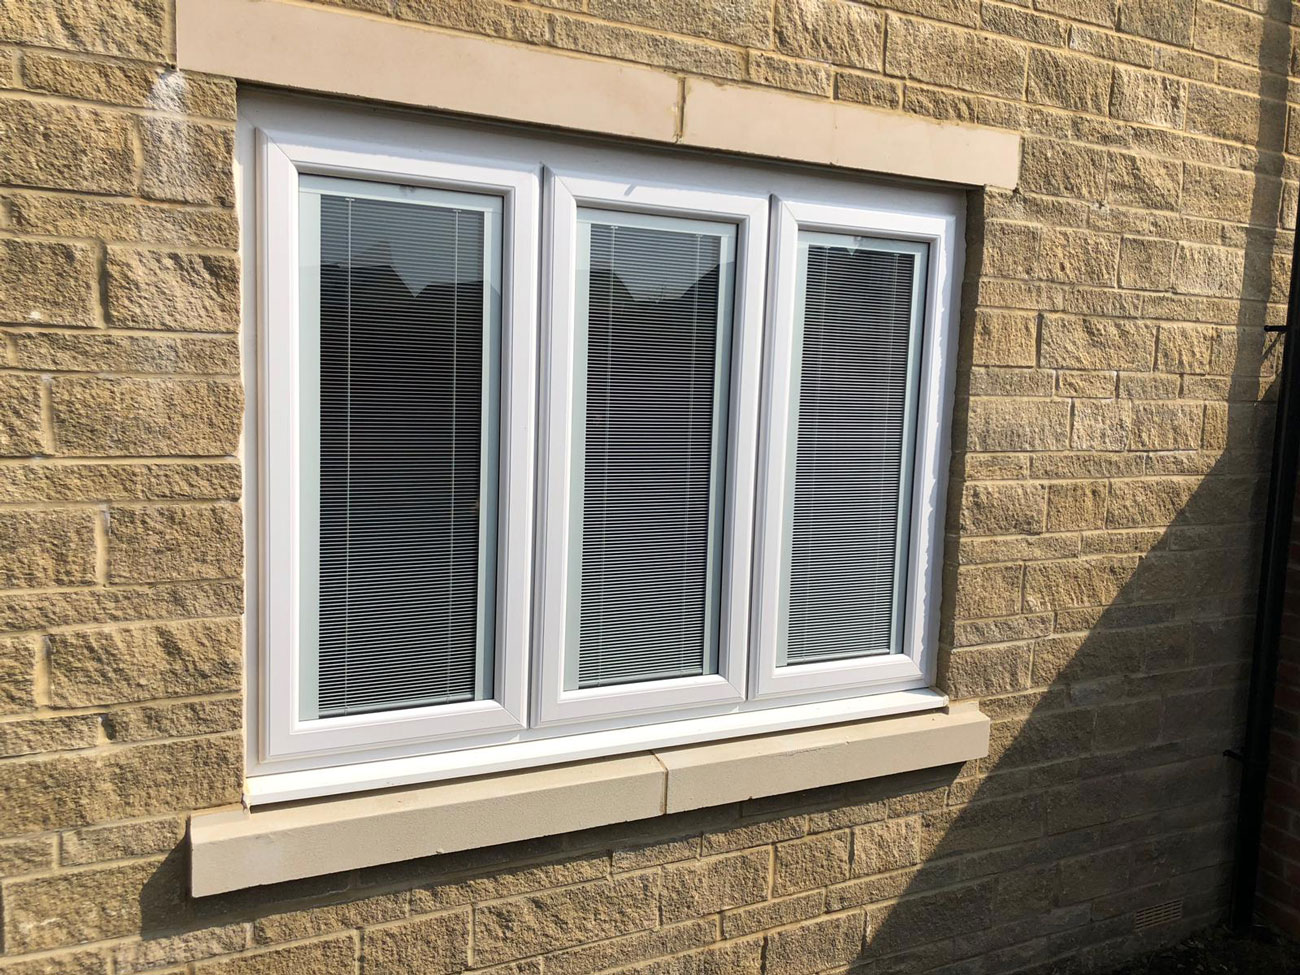 Windows With Built in Blinds Price Lincoln